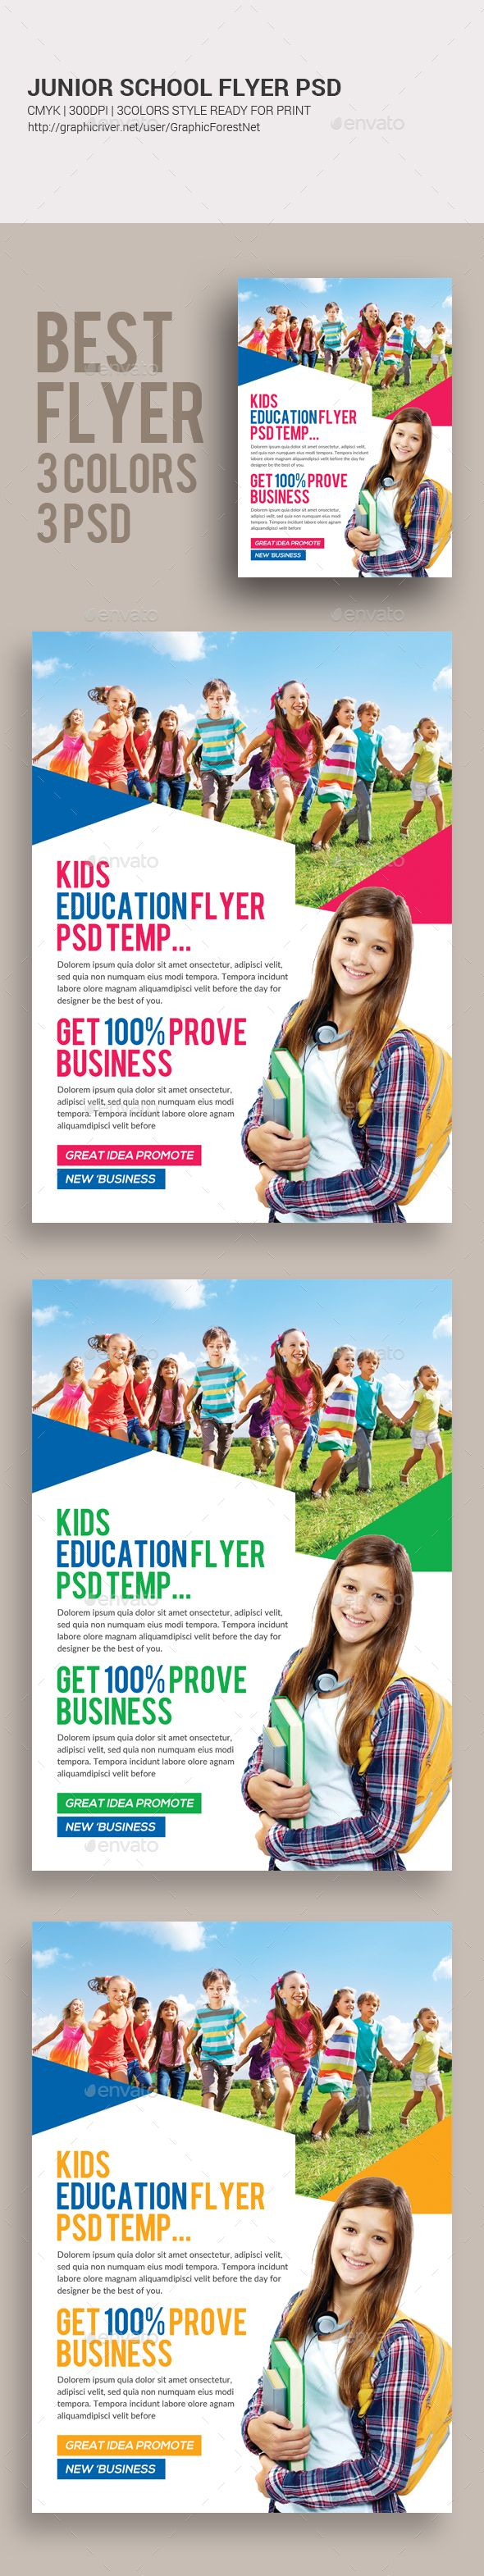 Junior School Education Flyer  — PSD Template #flyer #poster • Download ➝ https://graphicriver.net/item/junior-school-education-flyer/18390245?ref=pxcr